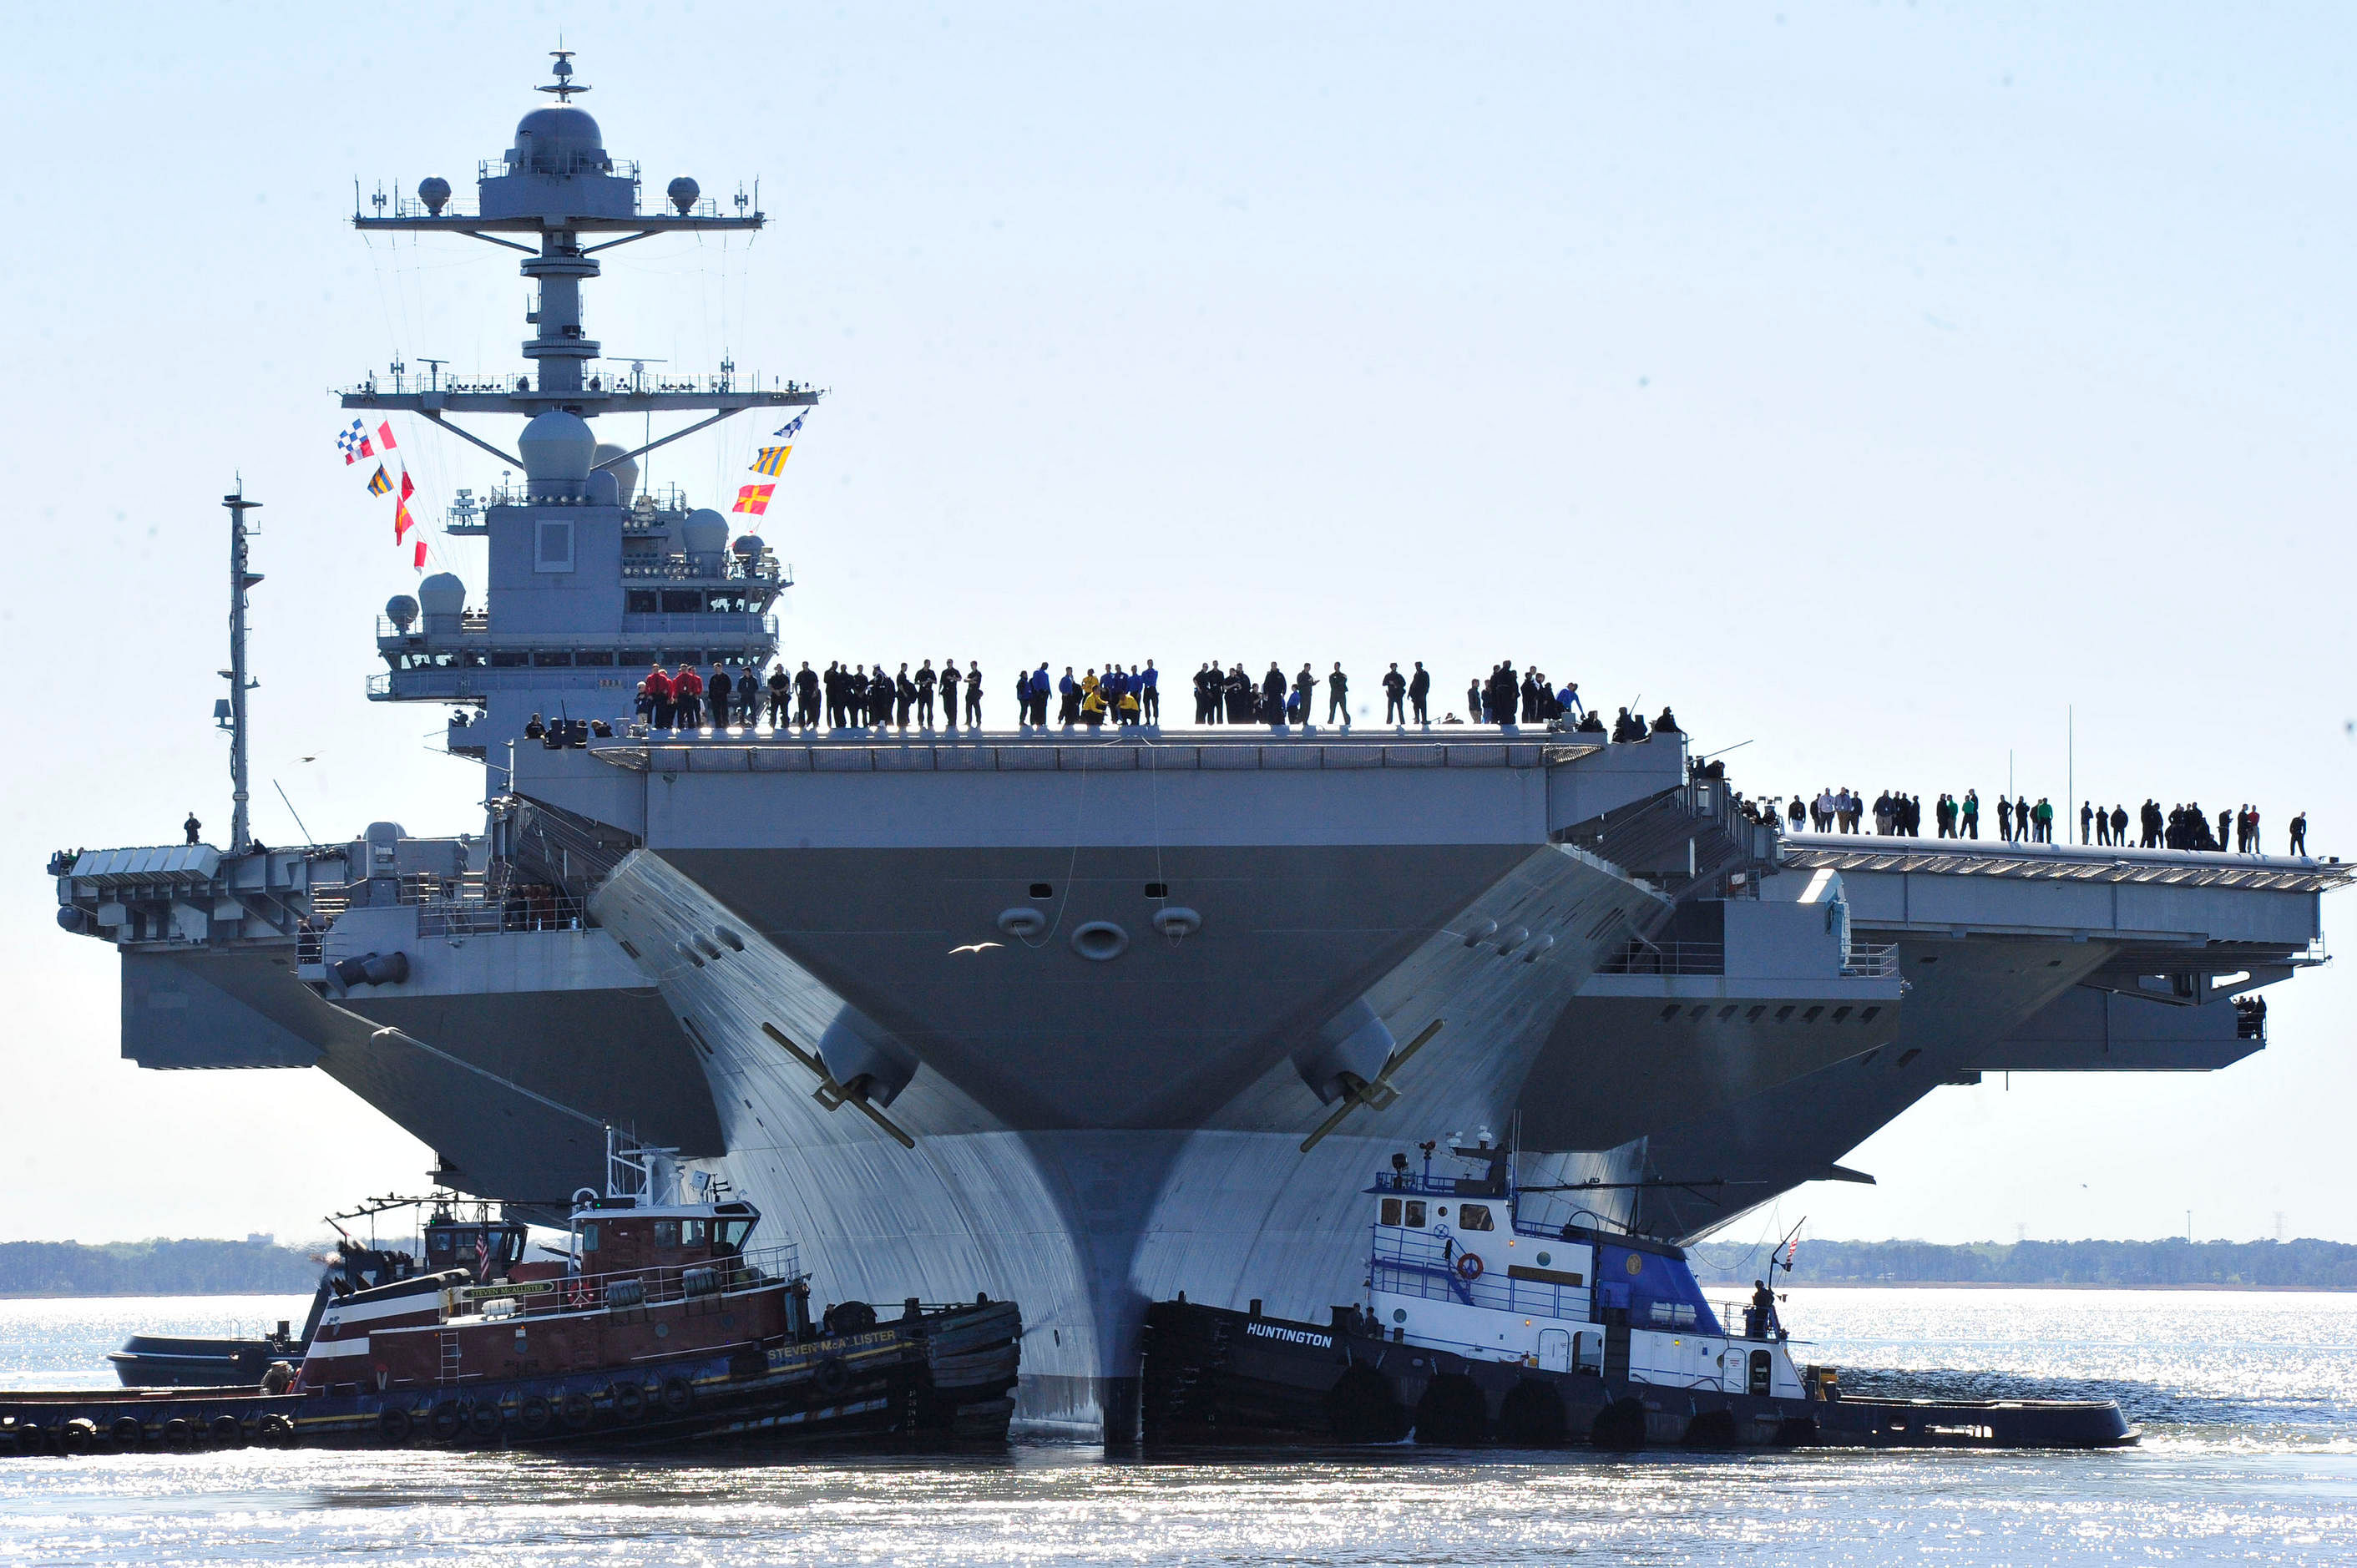 us navy rolls out new aircraft carrier uss gerald r ford for sea trials uni. Cars Review. Best American Auto & Cars Review